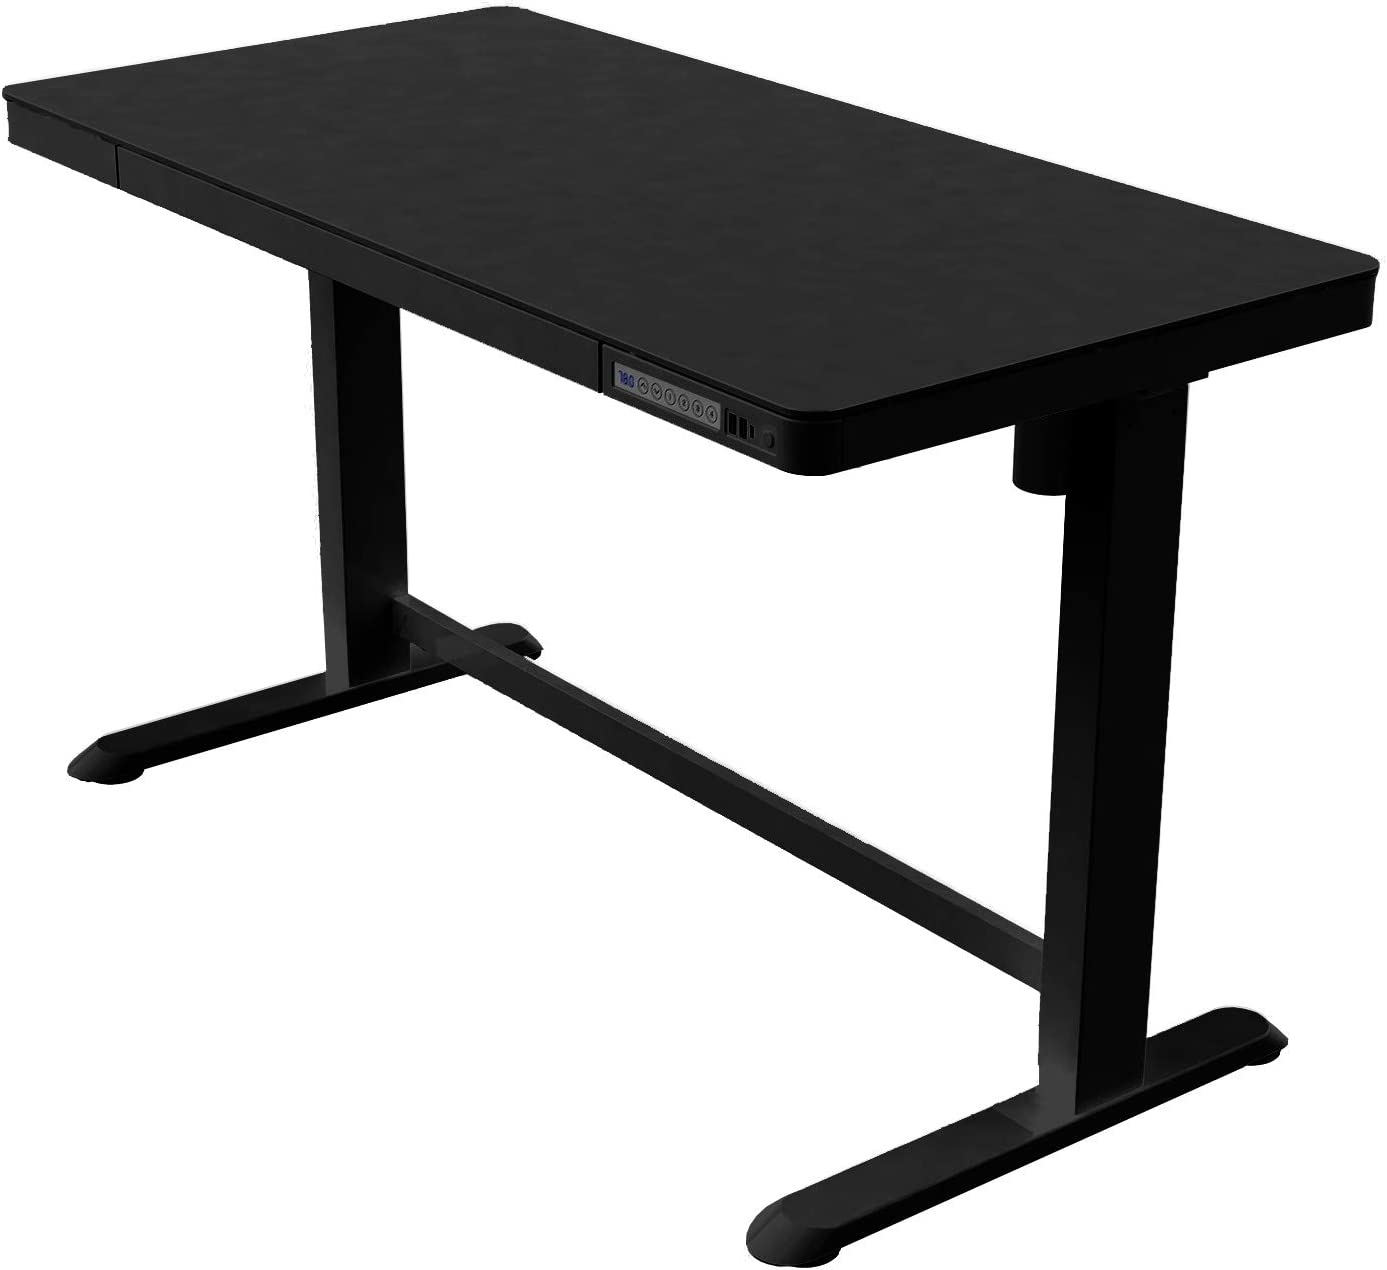 Allcam Ed20 Electric Height Adjustable Sit Stand Desk W Amazon Co Uk Electronics